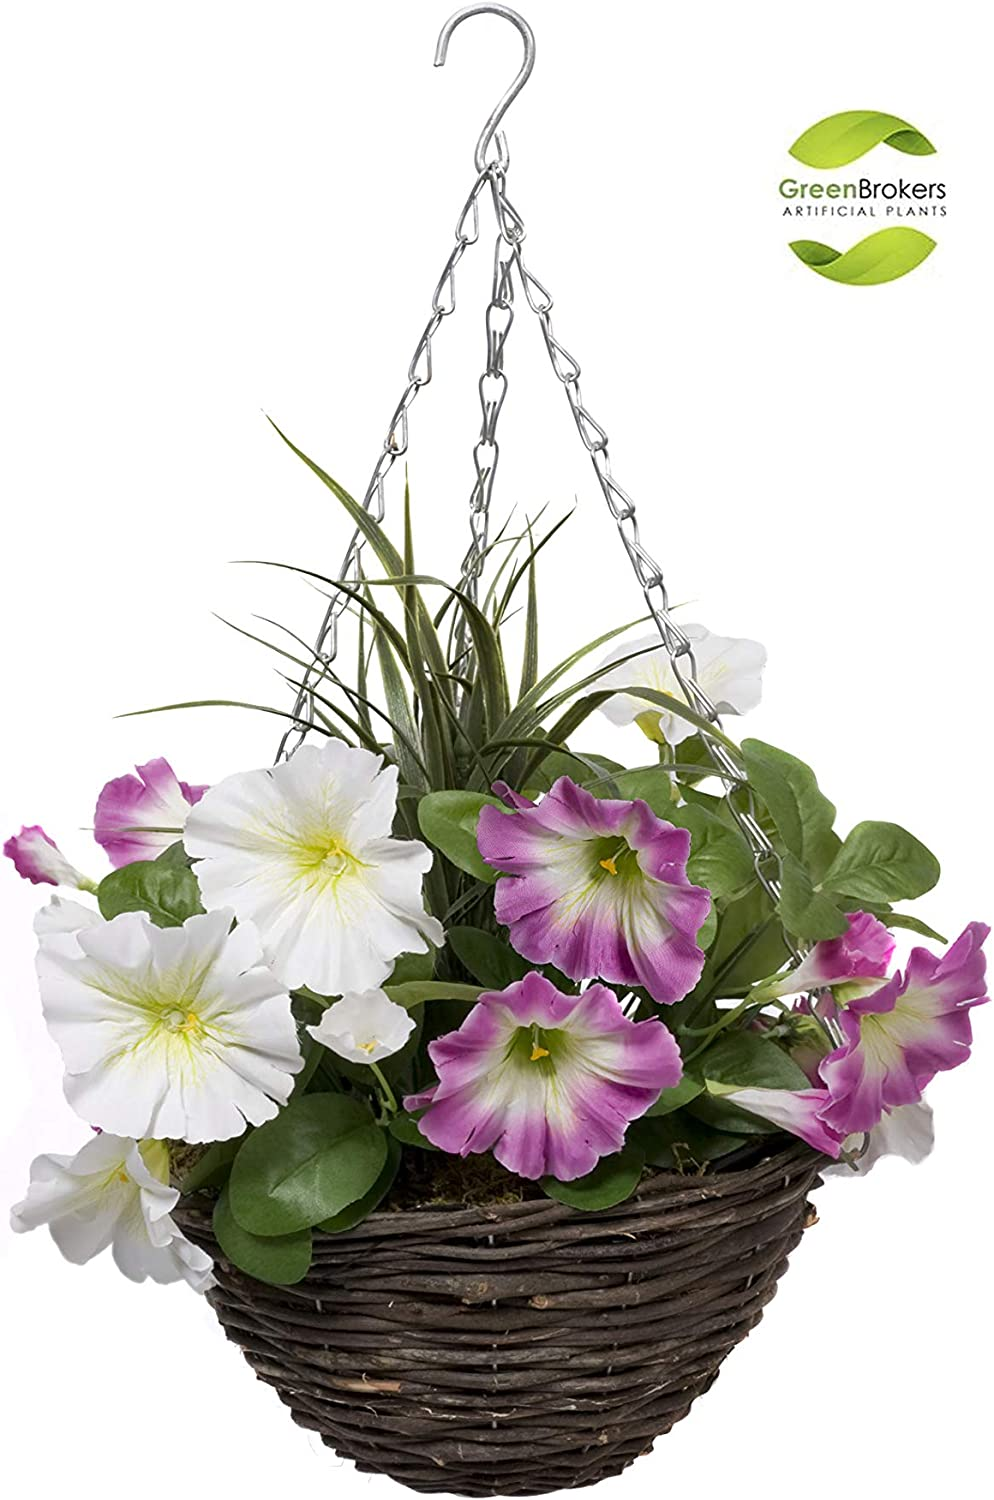 Set of 2 GreenBrokers Hanging Baskets 2X Artificial Round Rattan Pink /& White Petunias and Decorative Grasses